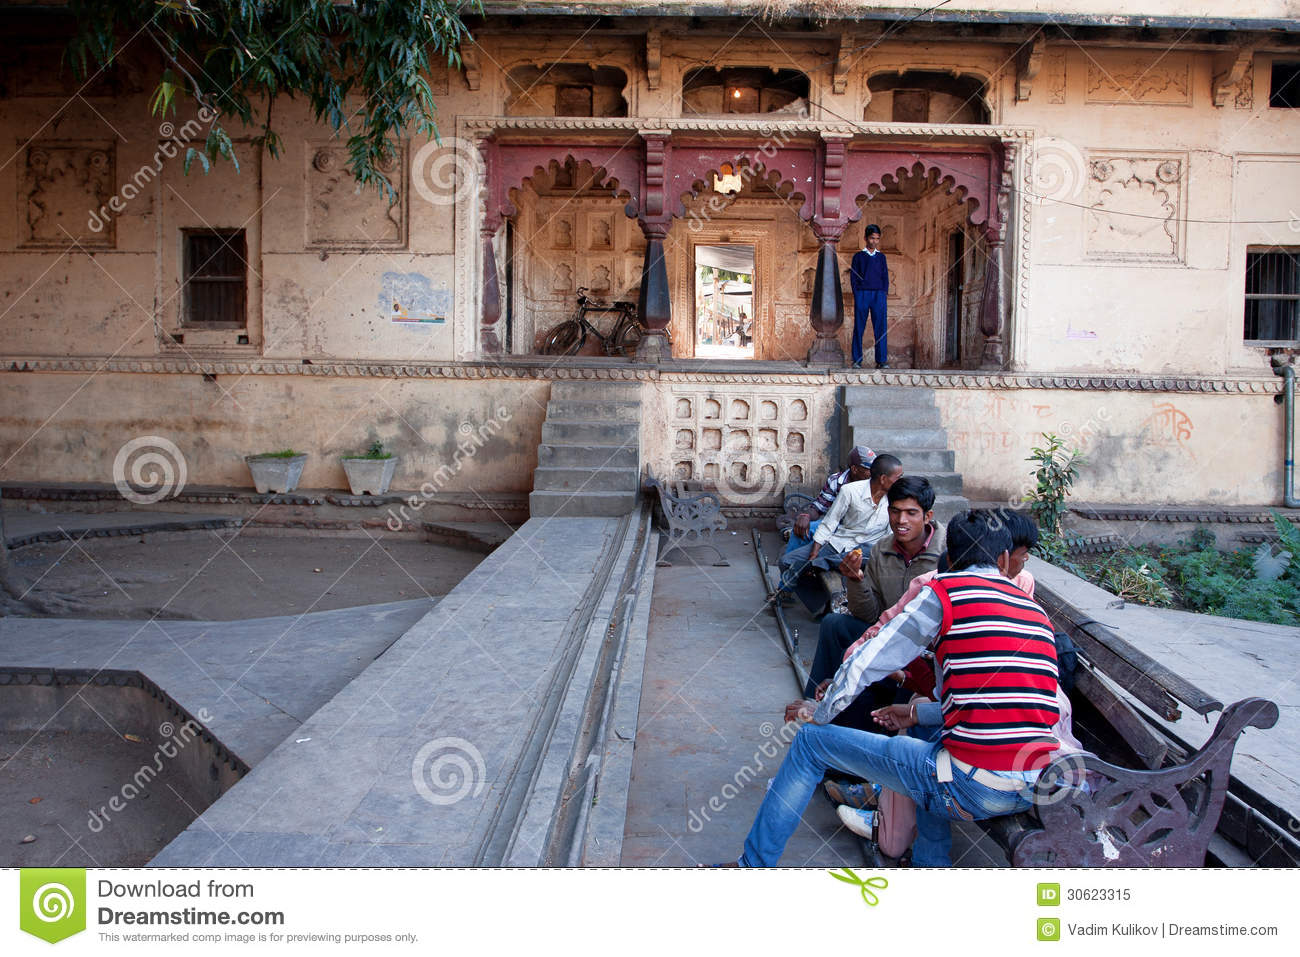 hindu single men in steele city Find local singles on indiandating, an online dating site that makes it fun for single men and women looking for love and romance to find their soulmate.